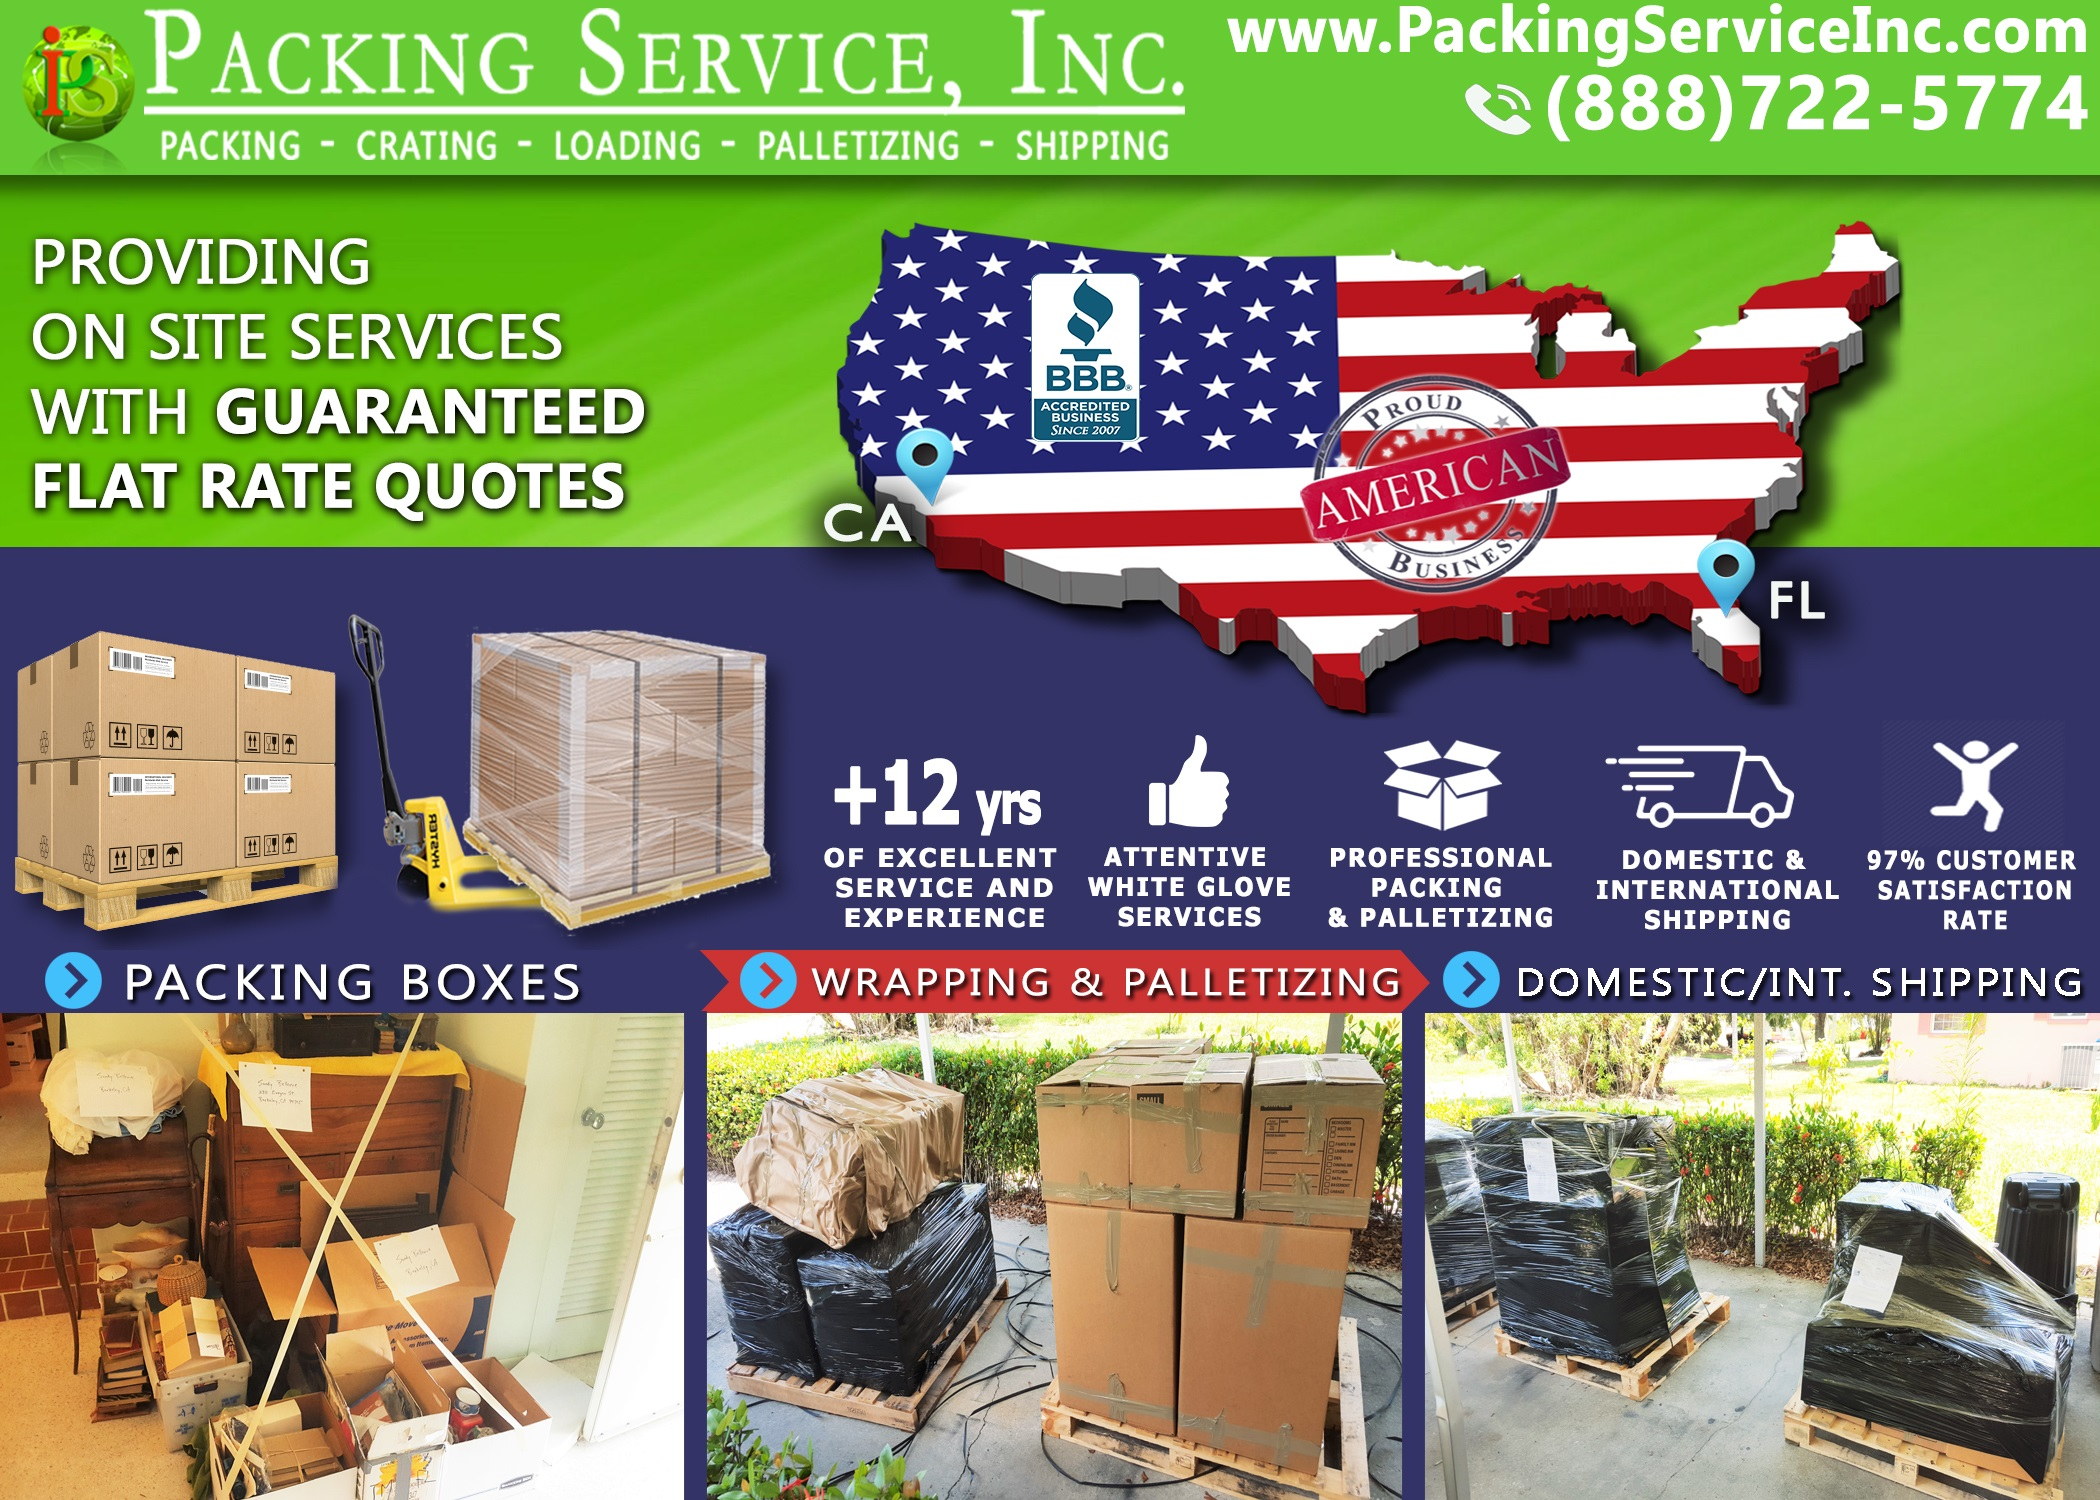 packing-boxes-palletizing-and-shipping-from-florida-to-california-with-packing-service-inc-222